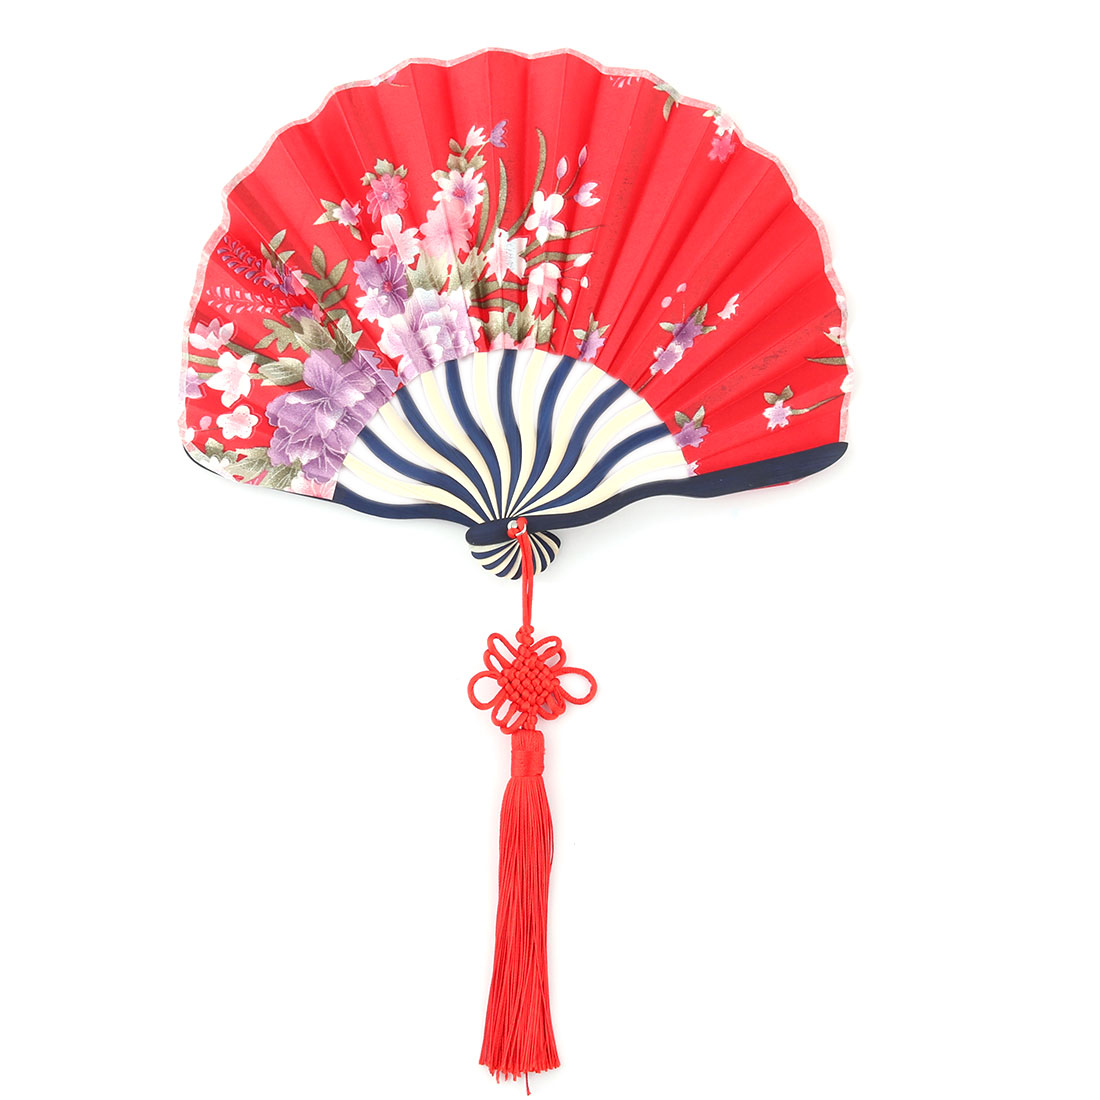 Bamboo Frame Flower Pattern Chinese Style Handheld Dancing Folding Fan Red